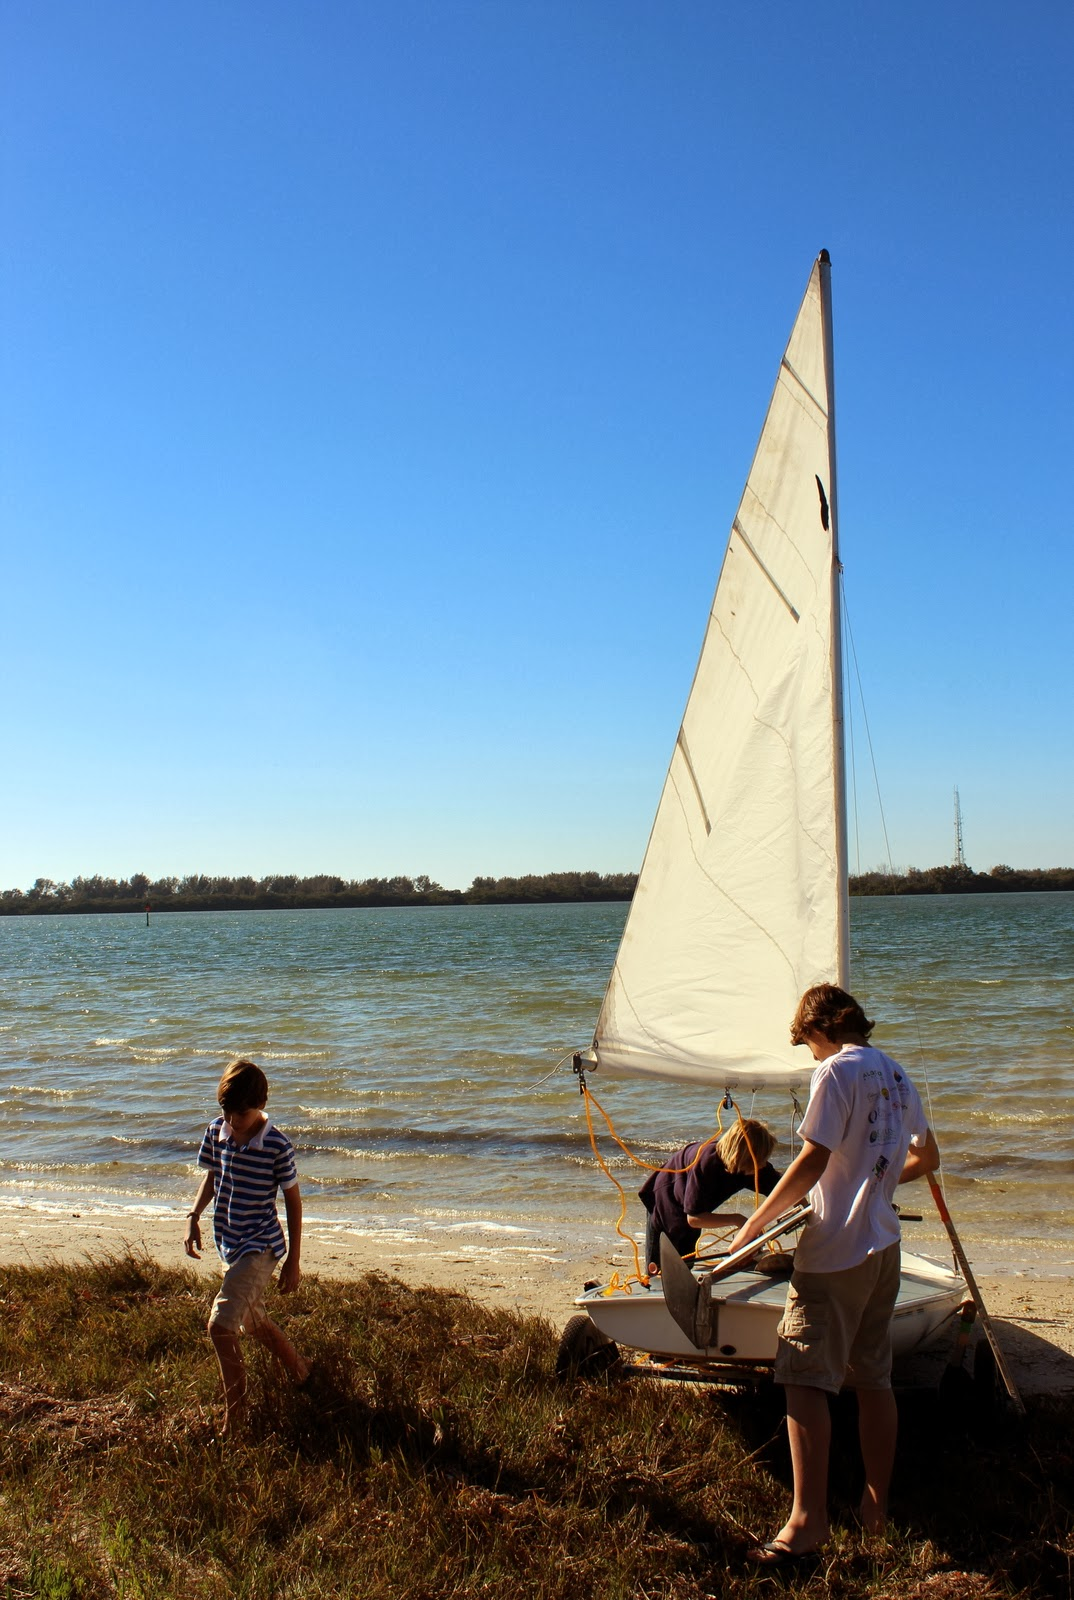 Pop Up camping and Butterfly Sailboat at Fort De Soto Park, St. Petersburg, FL